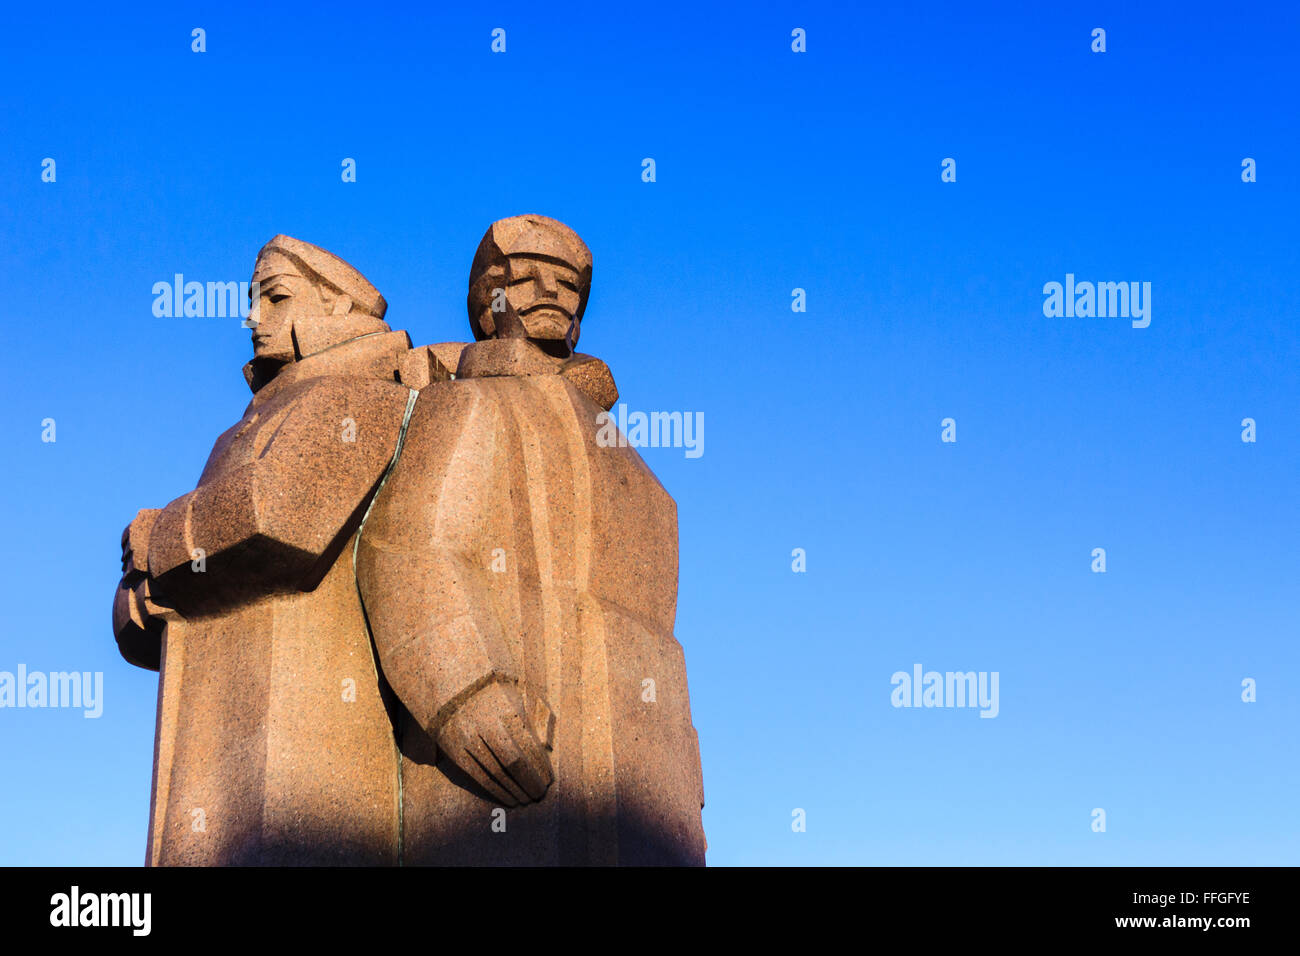 Latvian Riflemen monument on Latvian Riflemen sq. Riga, Latvia - Stock Image